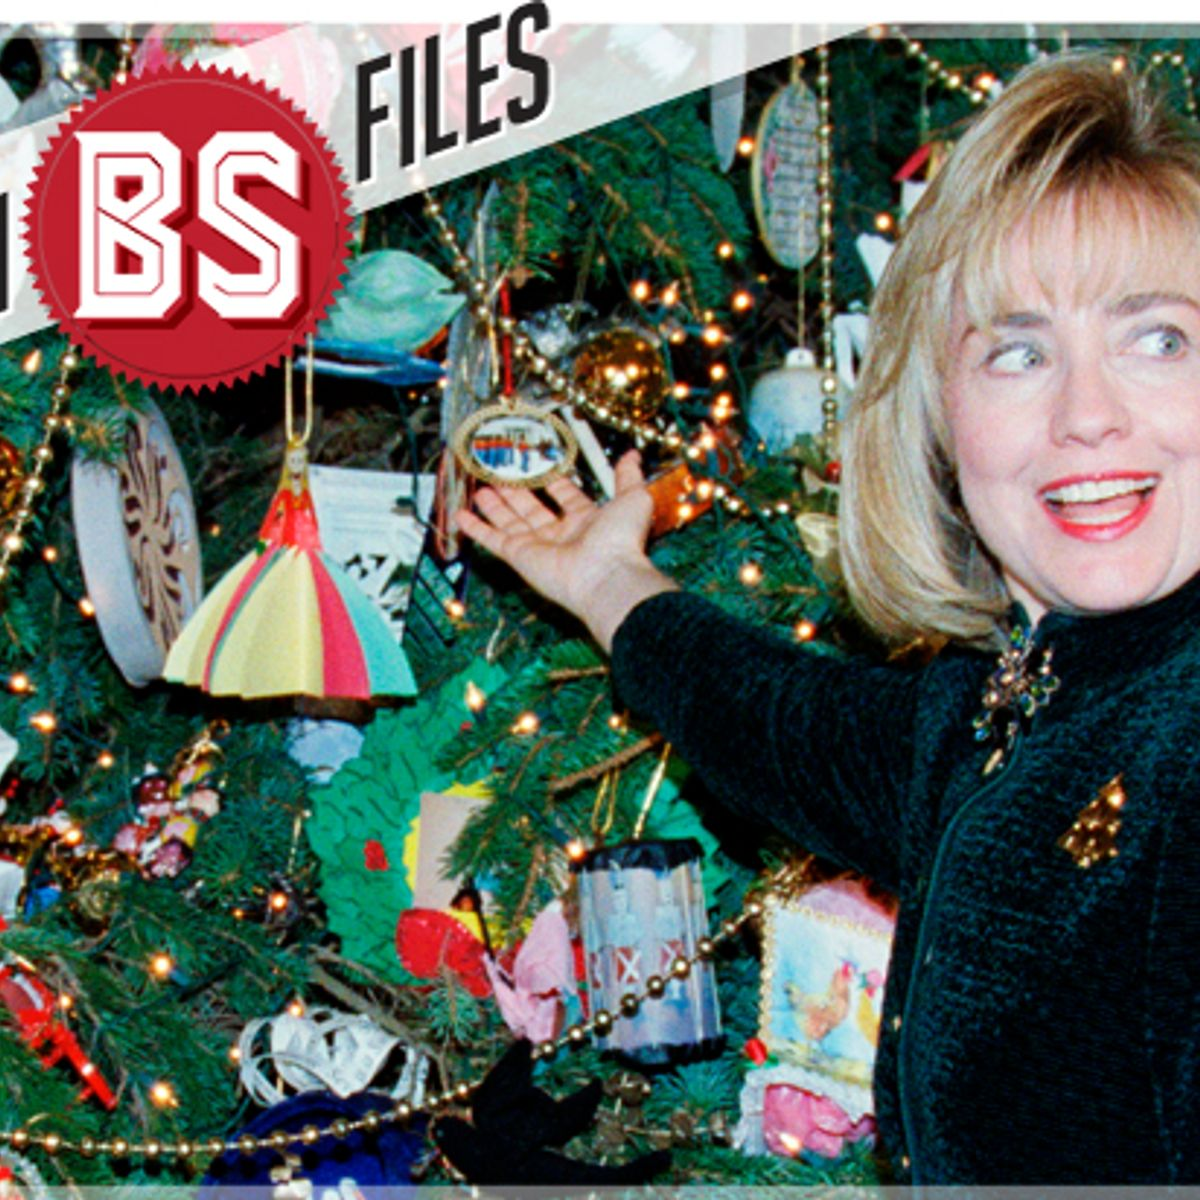 Hillary Clinton Christmas.The Clinton Bs Files Hillary Didn T Decorate The White